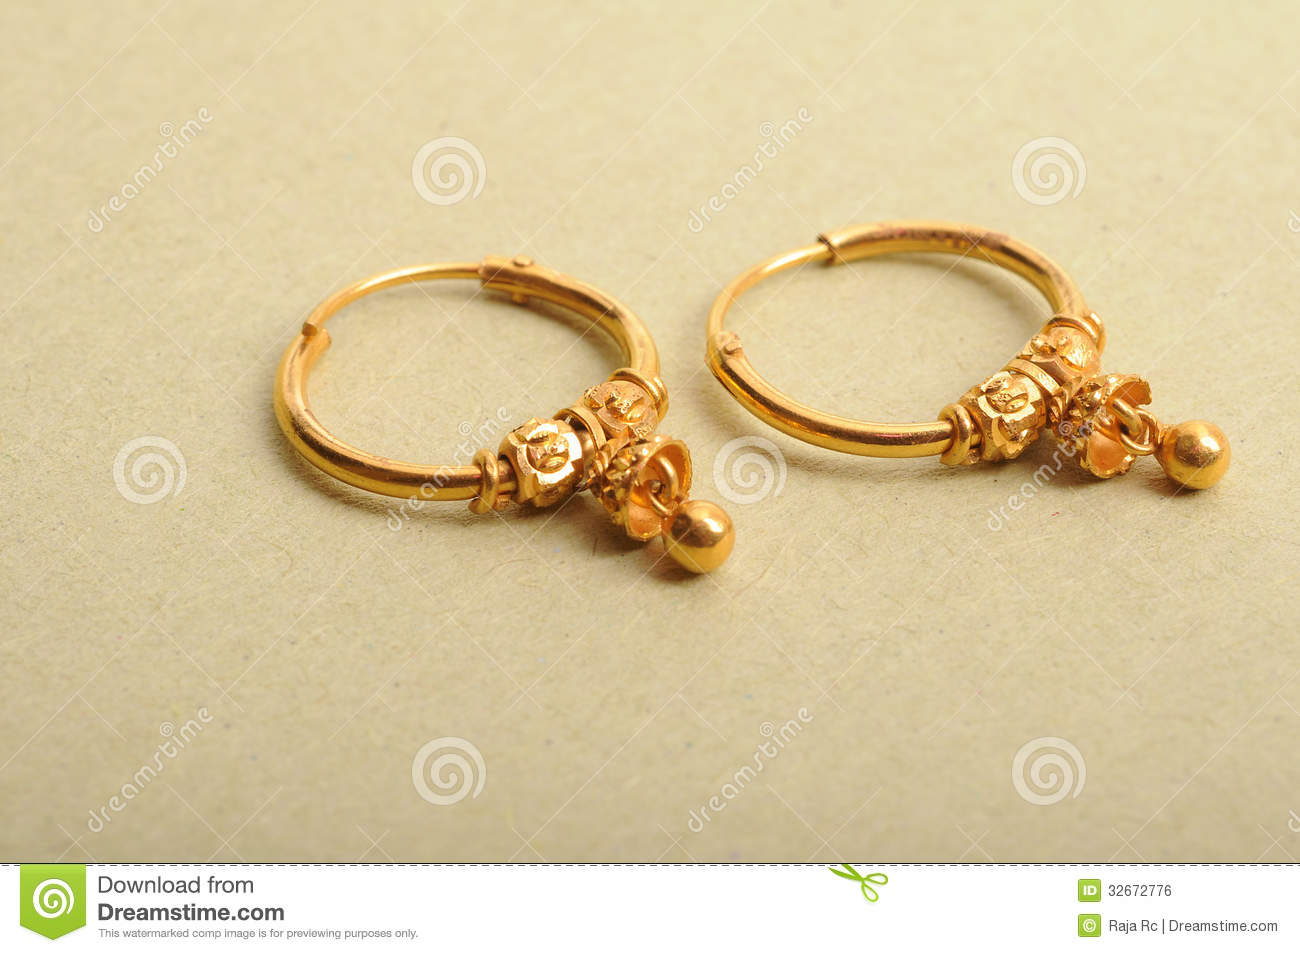 Gold earrings stock photo. Image of gorgeous, female - 32672776